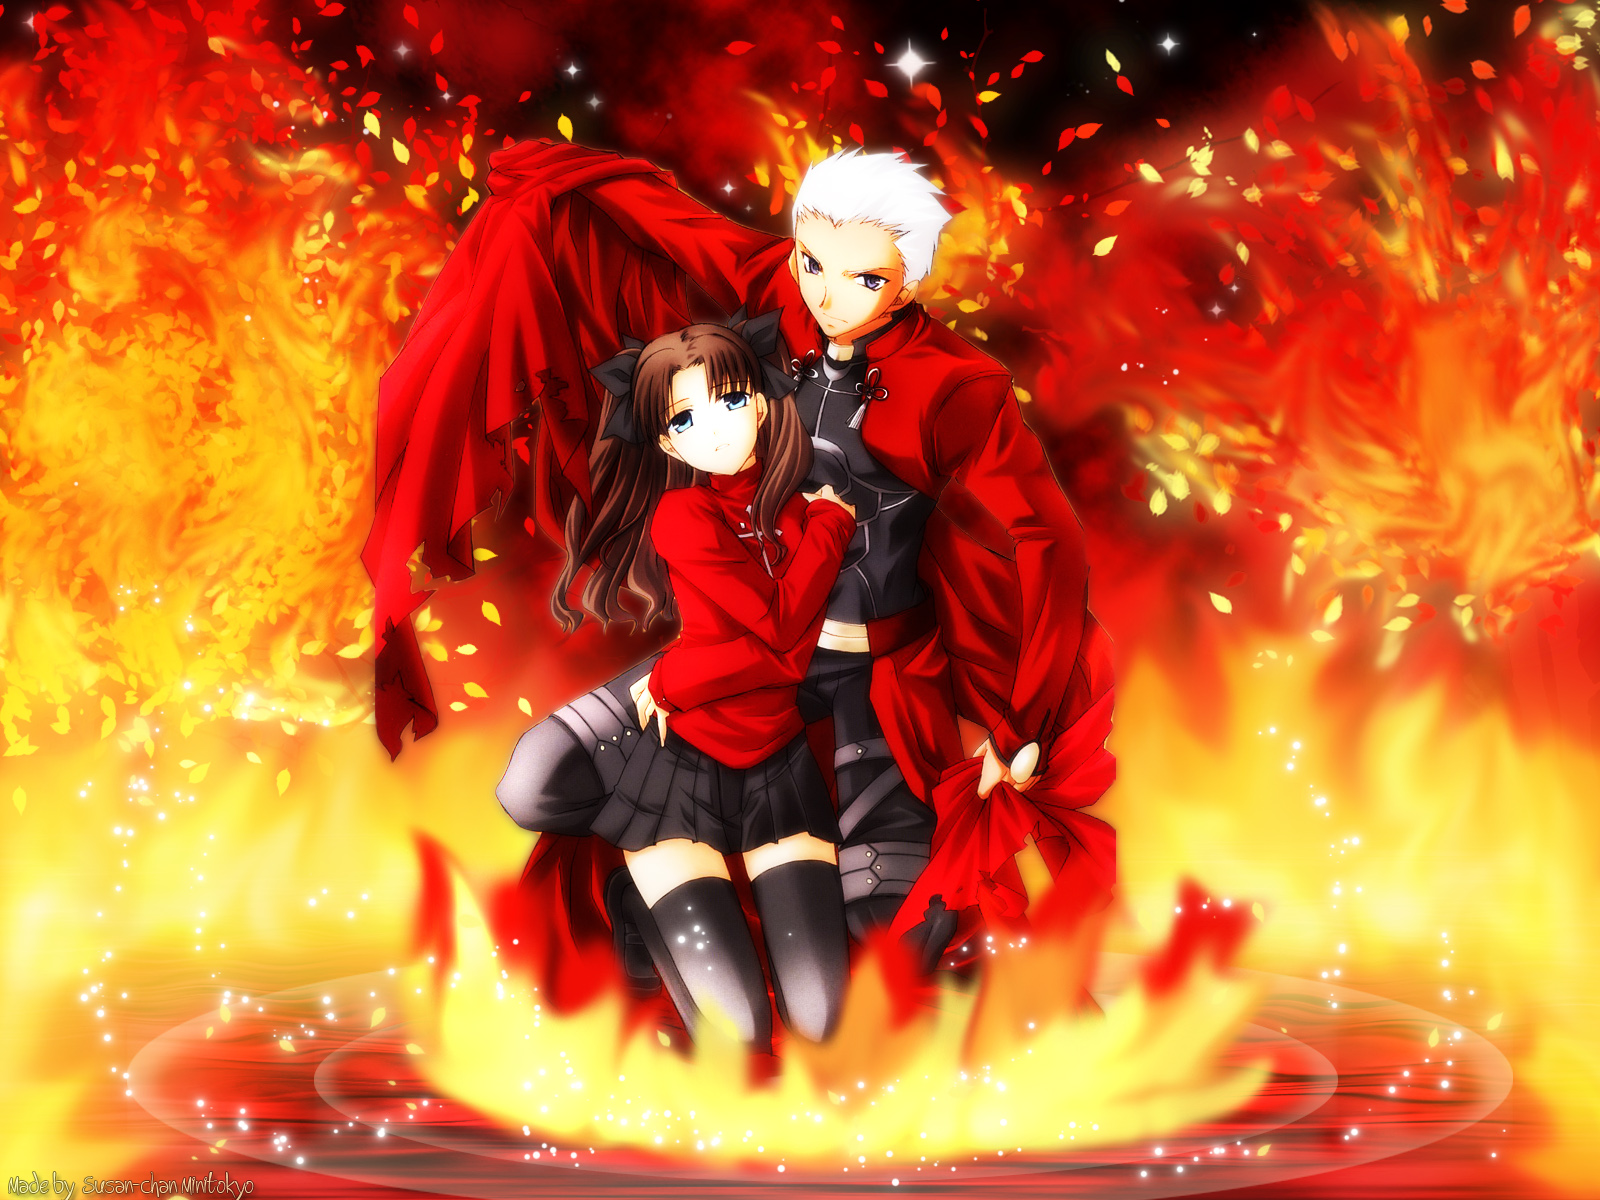 Anime - Fate/Stay Night Wallpaper